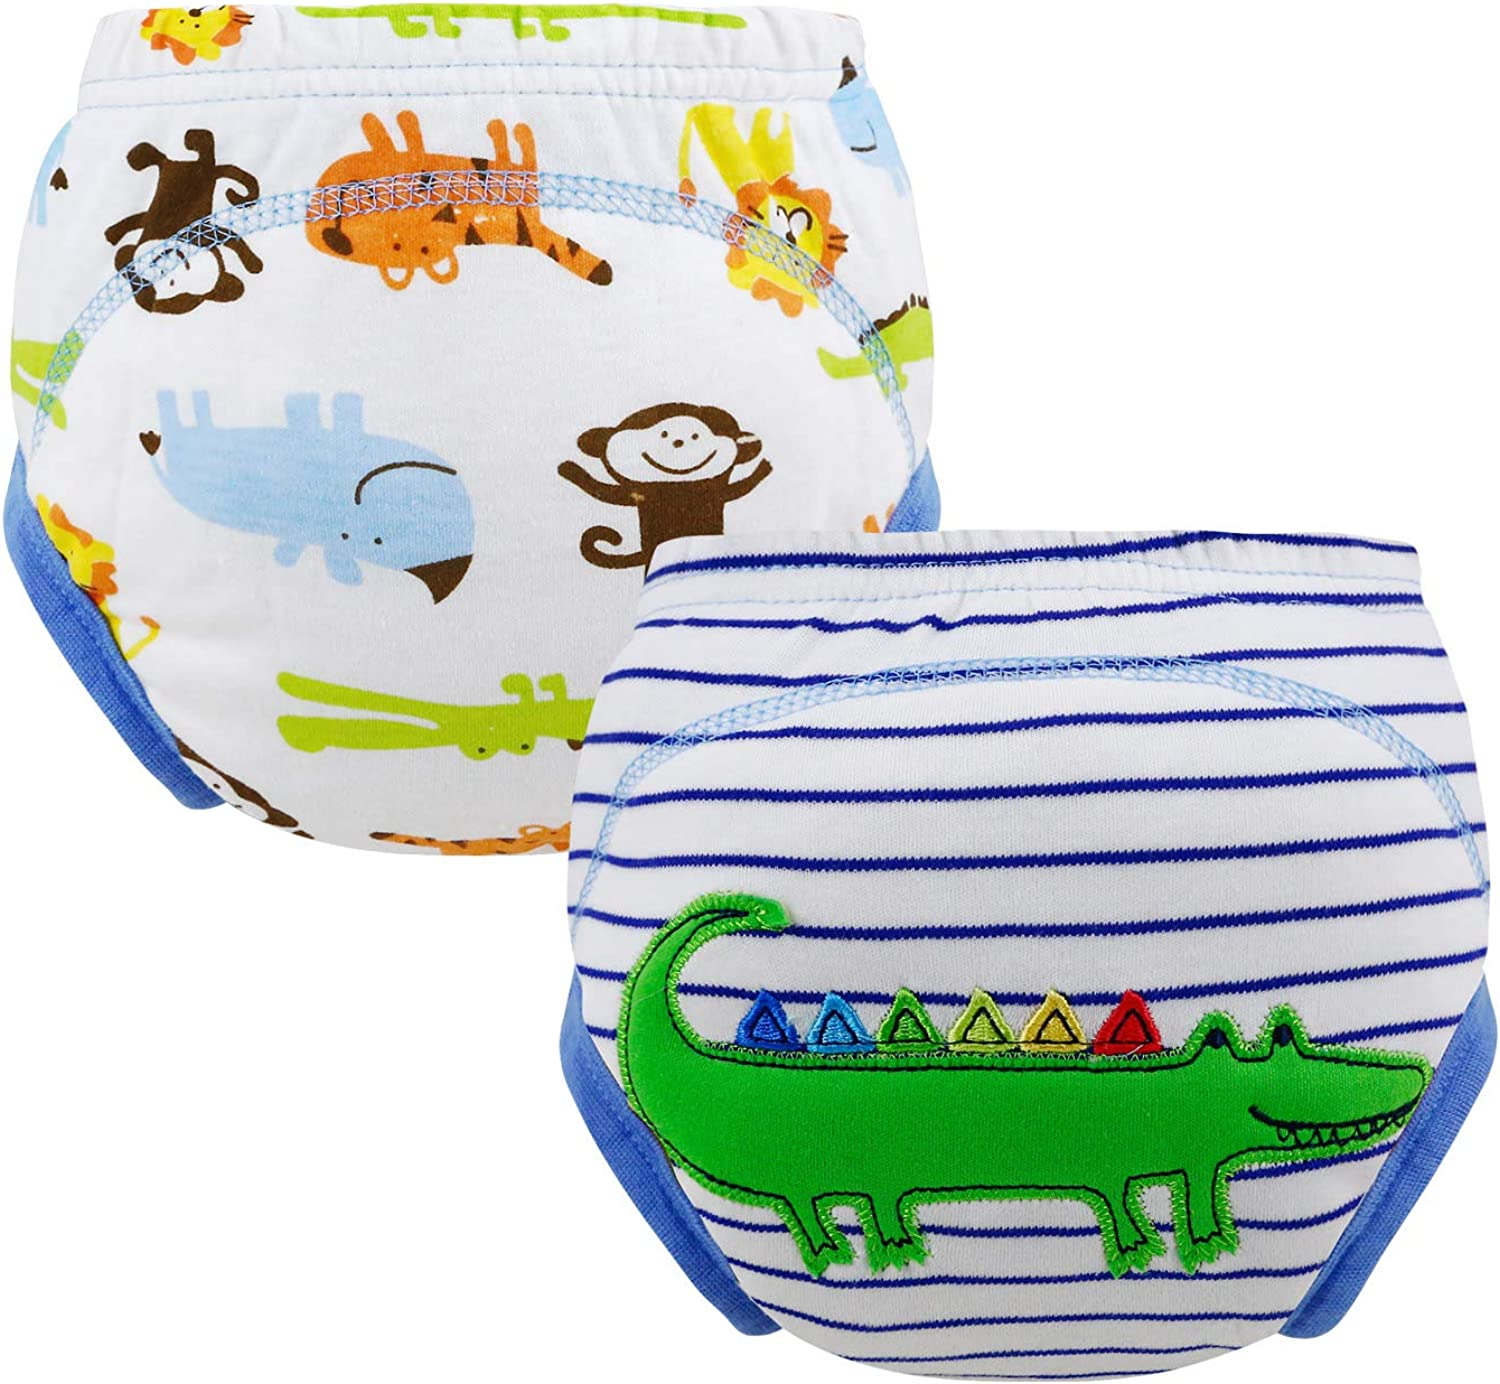 Baby Training Pants 2 Pack Cotton Toddler Thick Absorbent Potty Underwear for Boys Girls 12M-2T